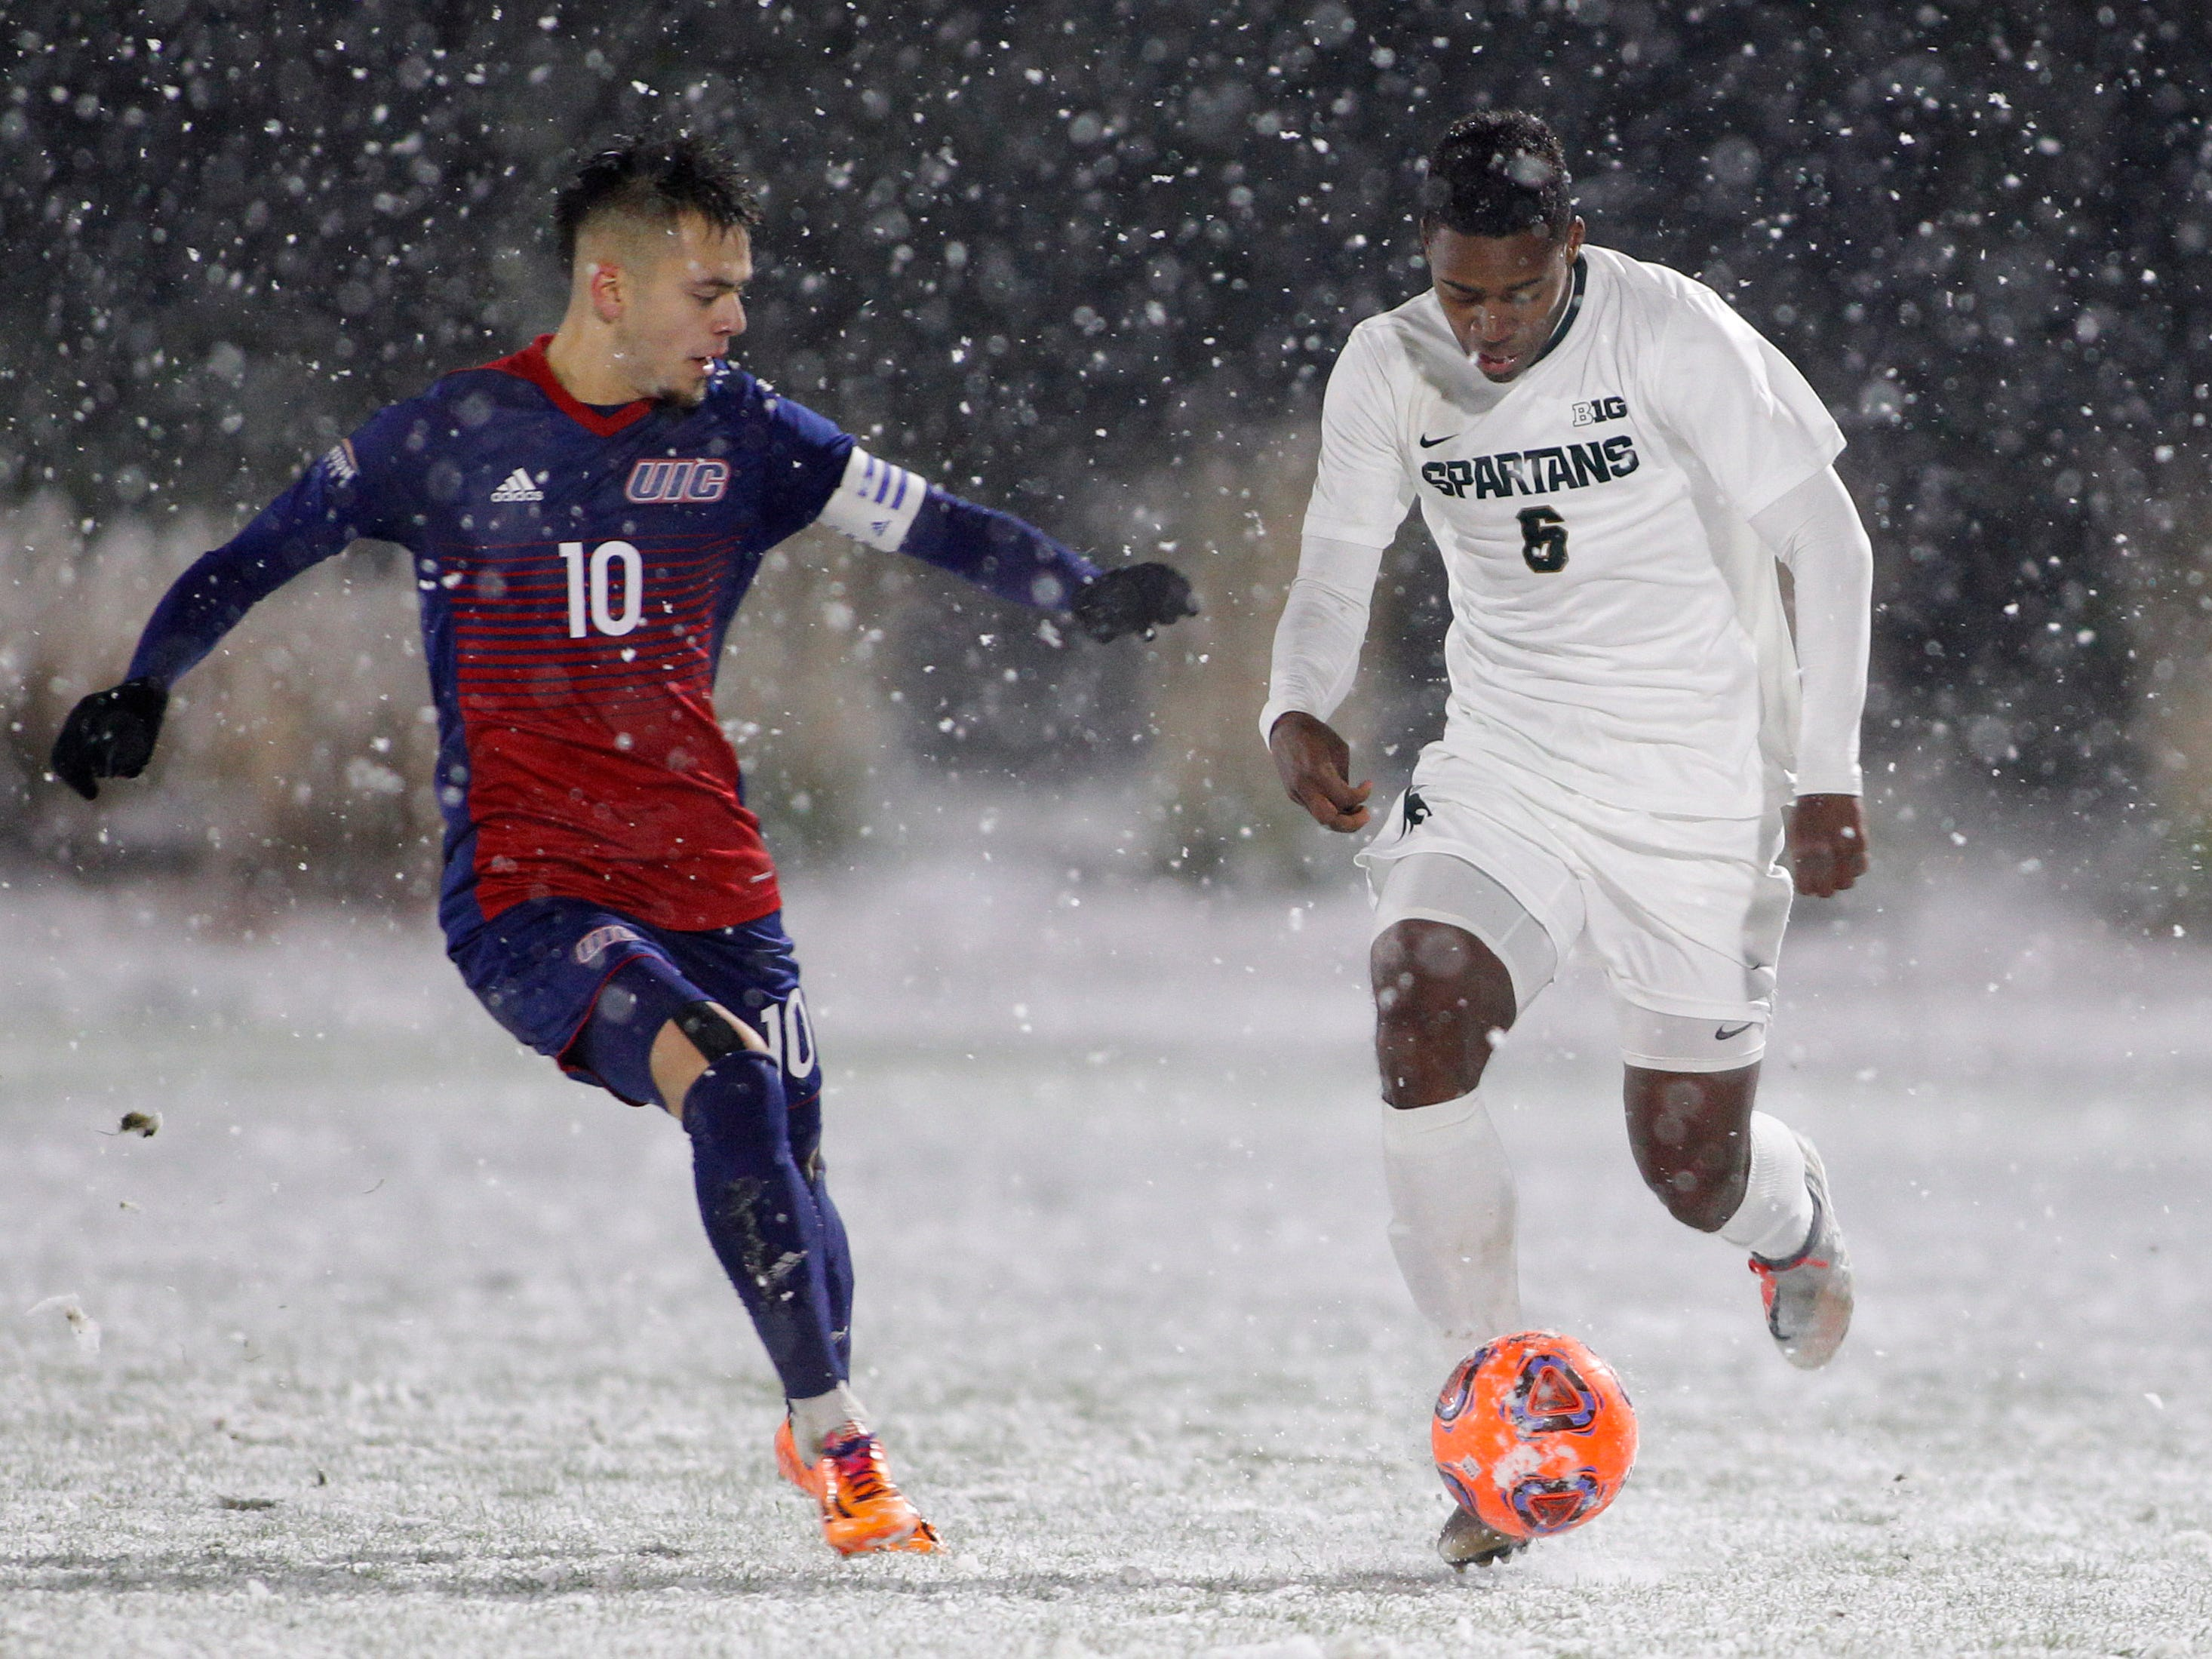 Michigan State's DeJuan Jones, right, controls the ball against Illinois-Chicago's Jesus Perez during their NCAA first round game, Thursday, Nov. 15, 2018, at DeMartin Stadium in East Lansing, Mich. MSU won 2-0.